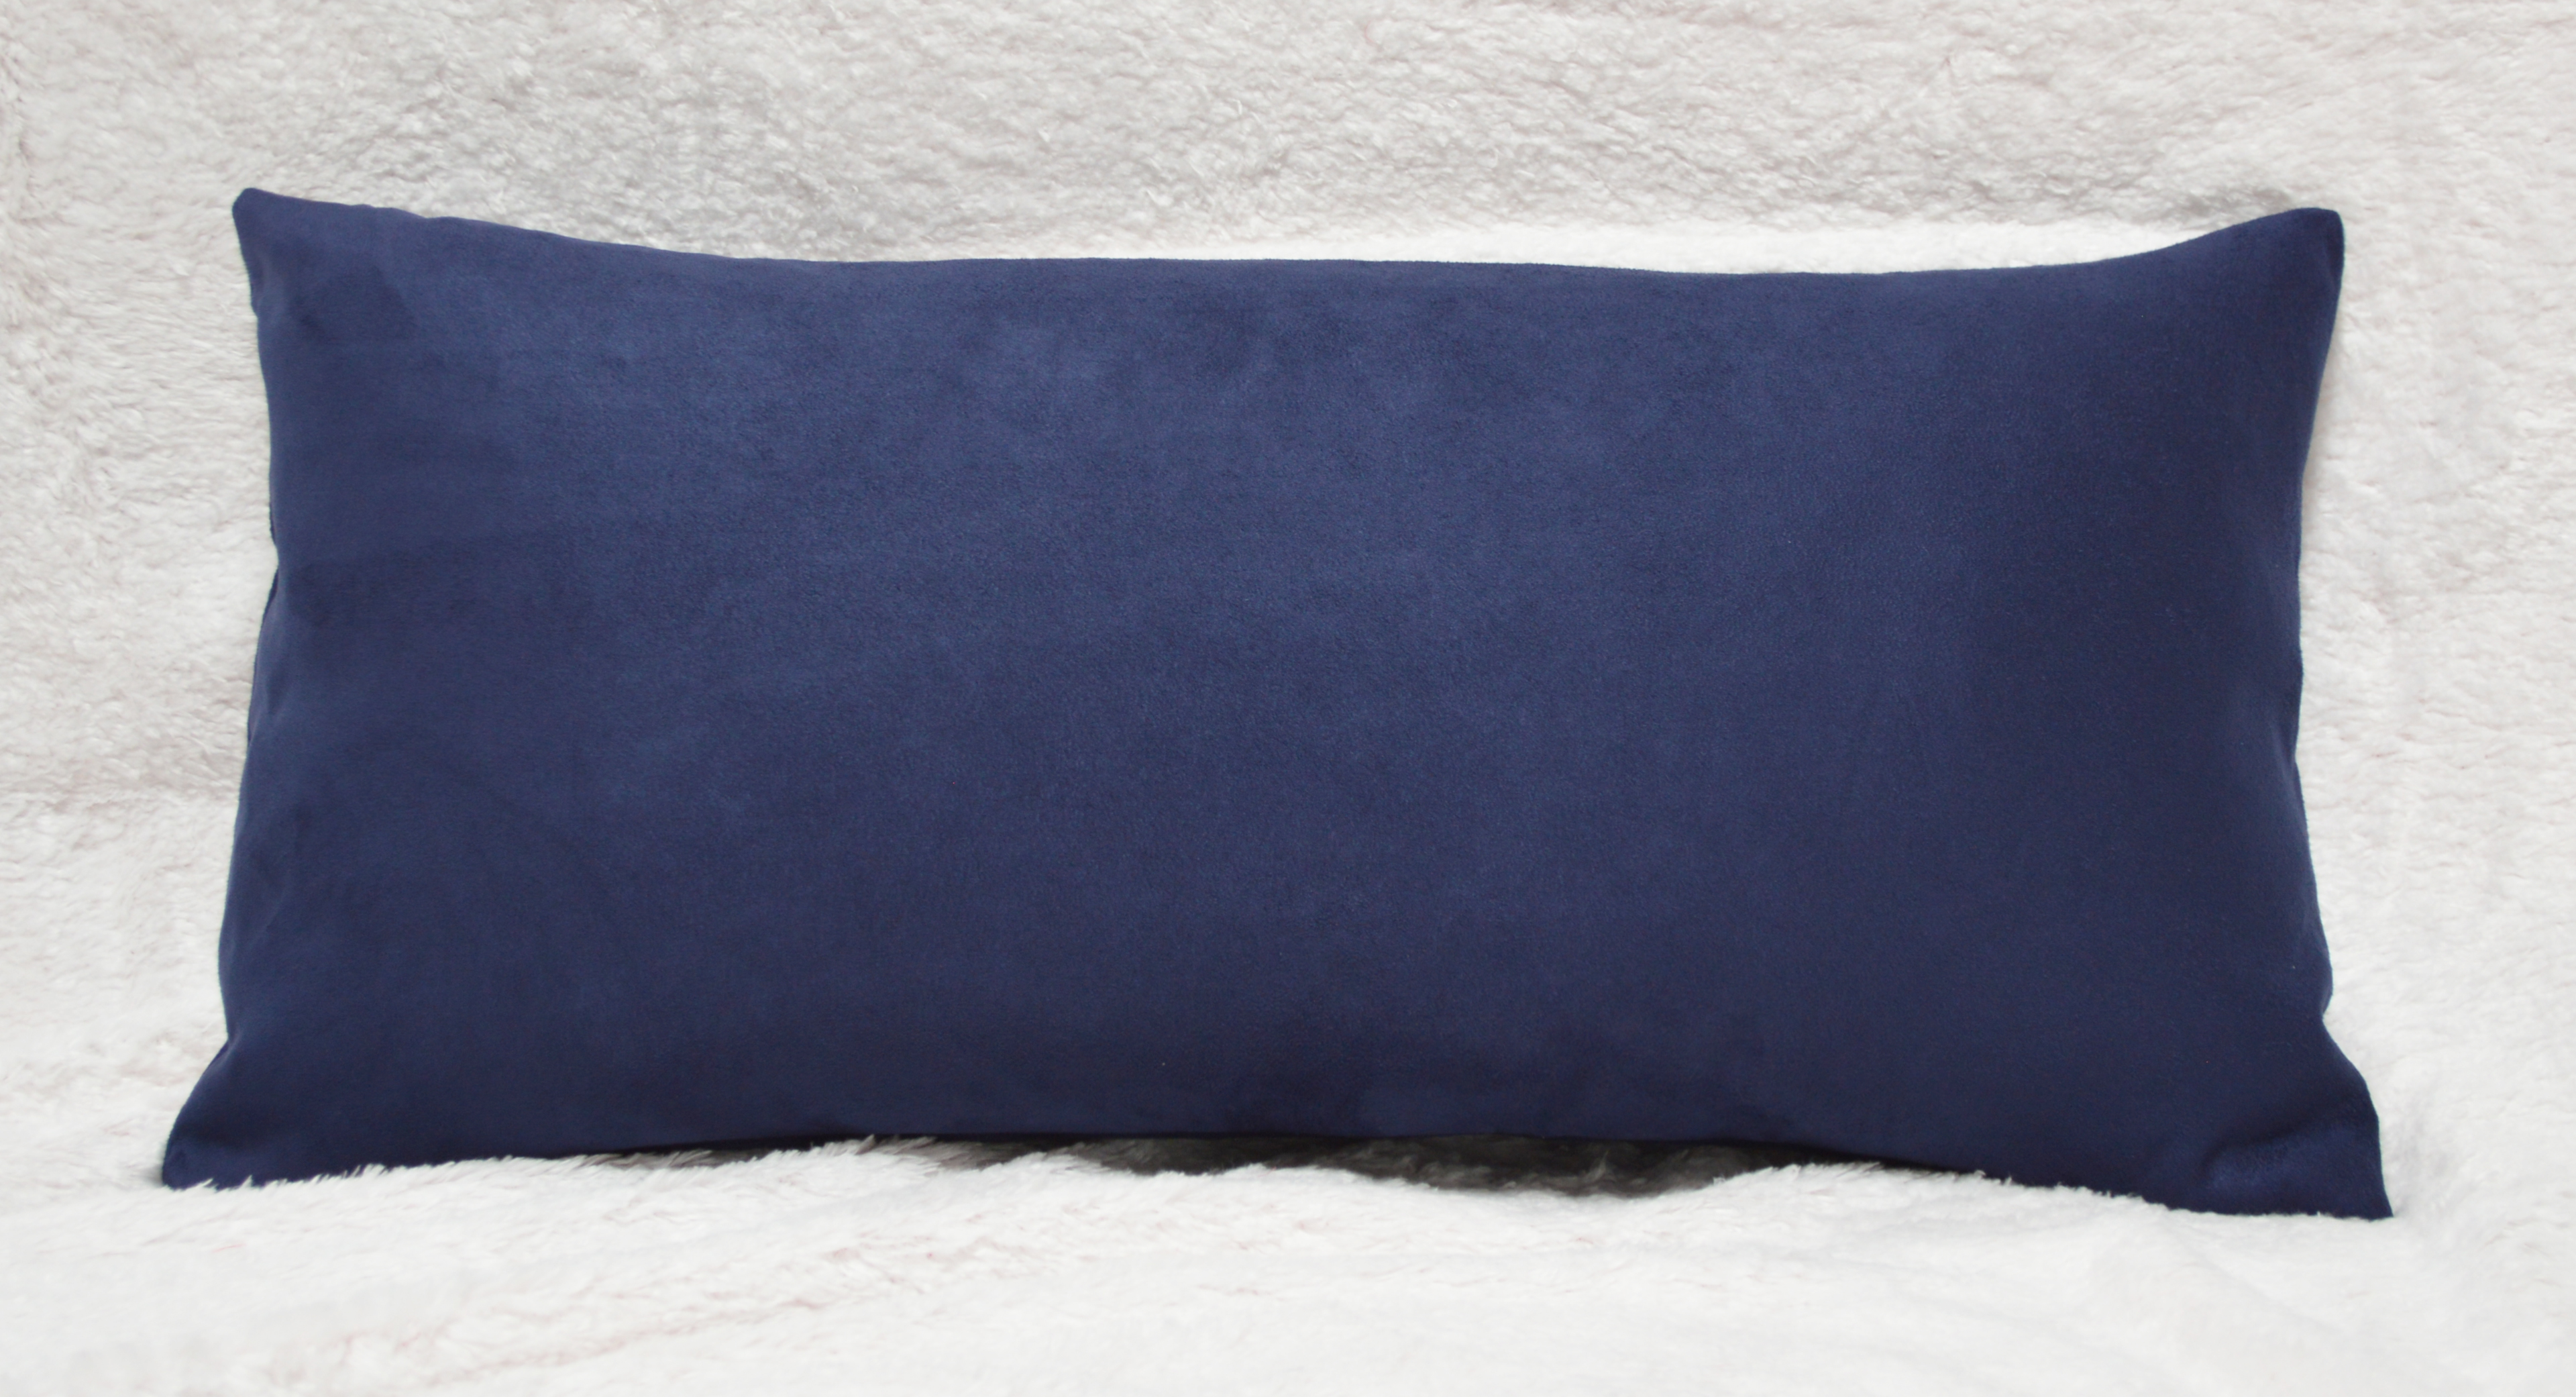 Click here to buy Aiking Home�Luxury Faux Suede Body Pillow Cover with Hidden Zipper 20 By 54, Navy by Aiking Home Collection.